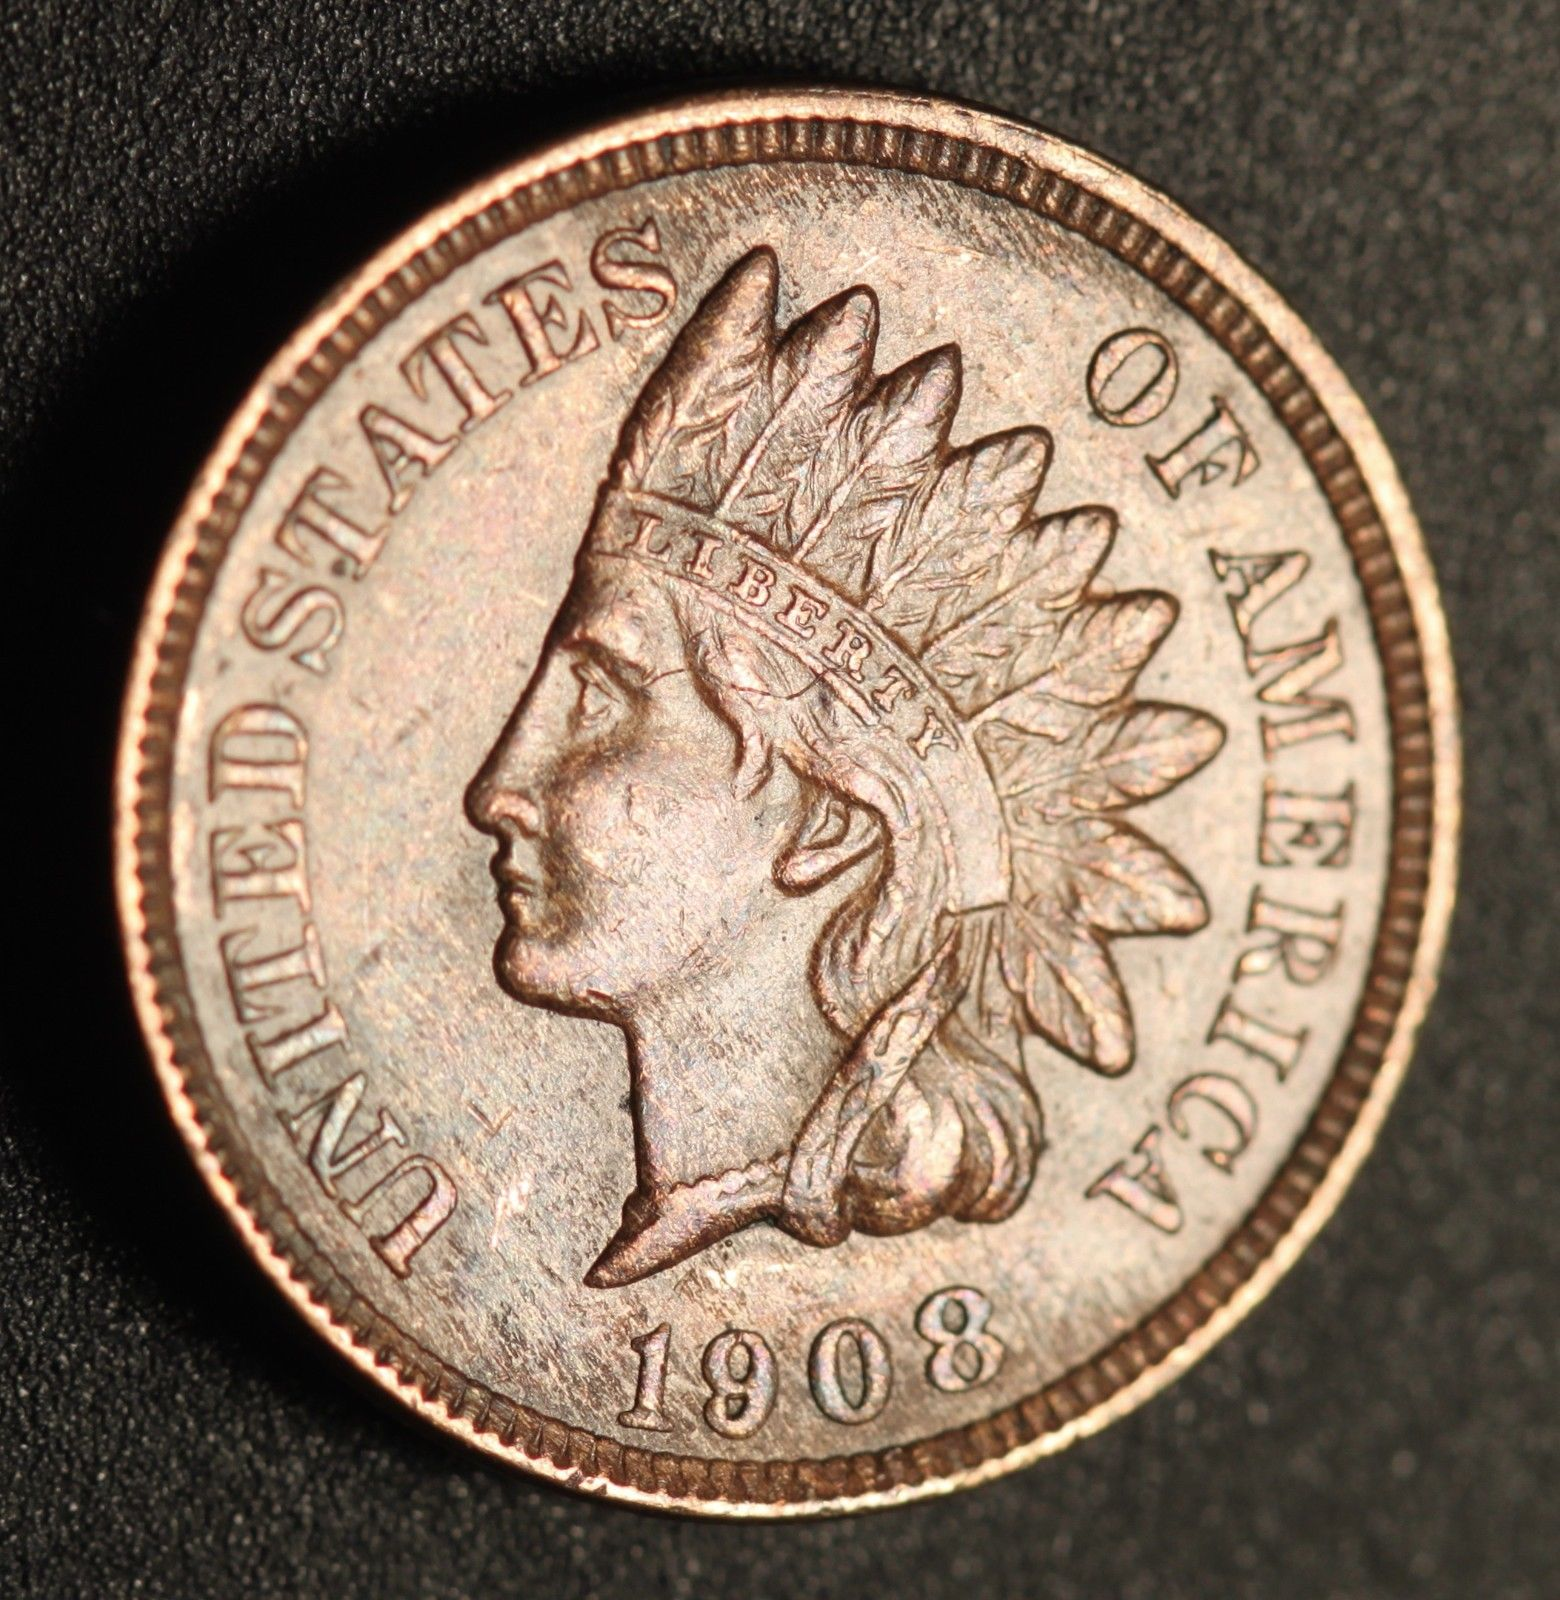 1908 MPD-012, RPD-004 - Indian Head Penny - Photo by Ed Nathanson